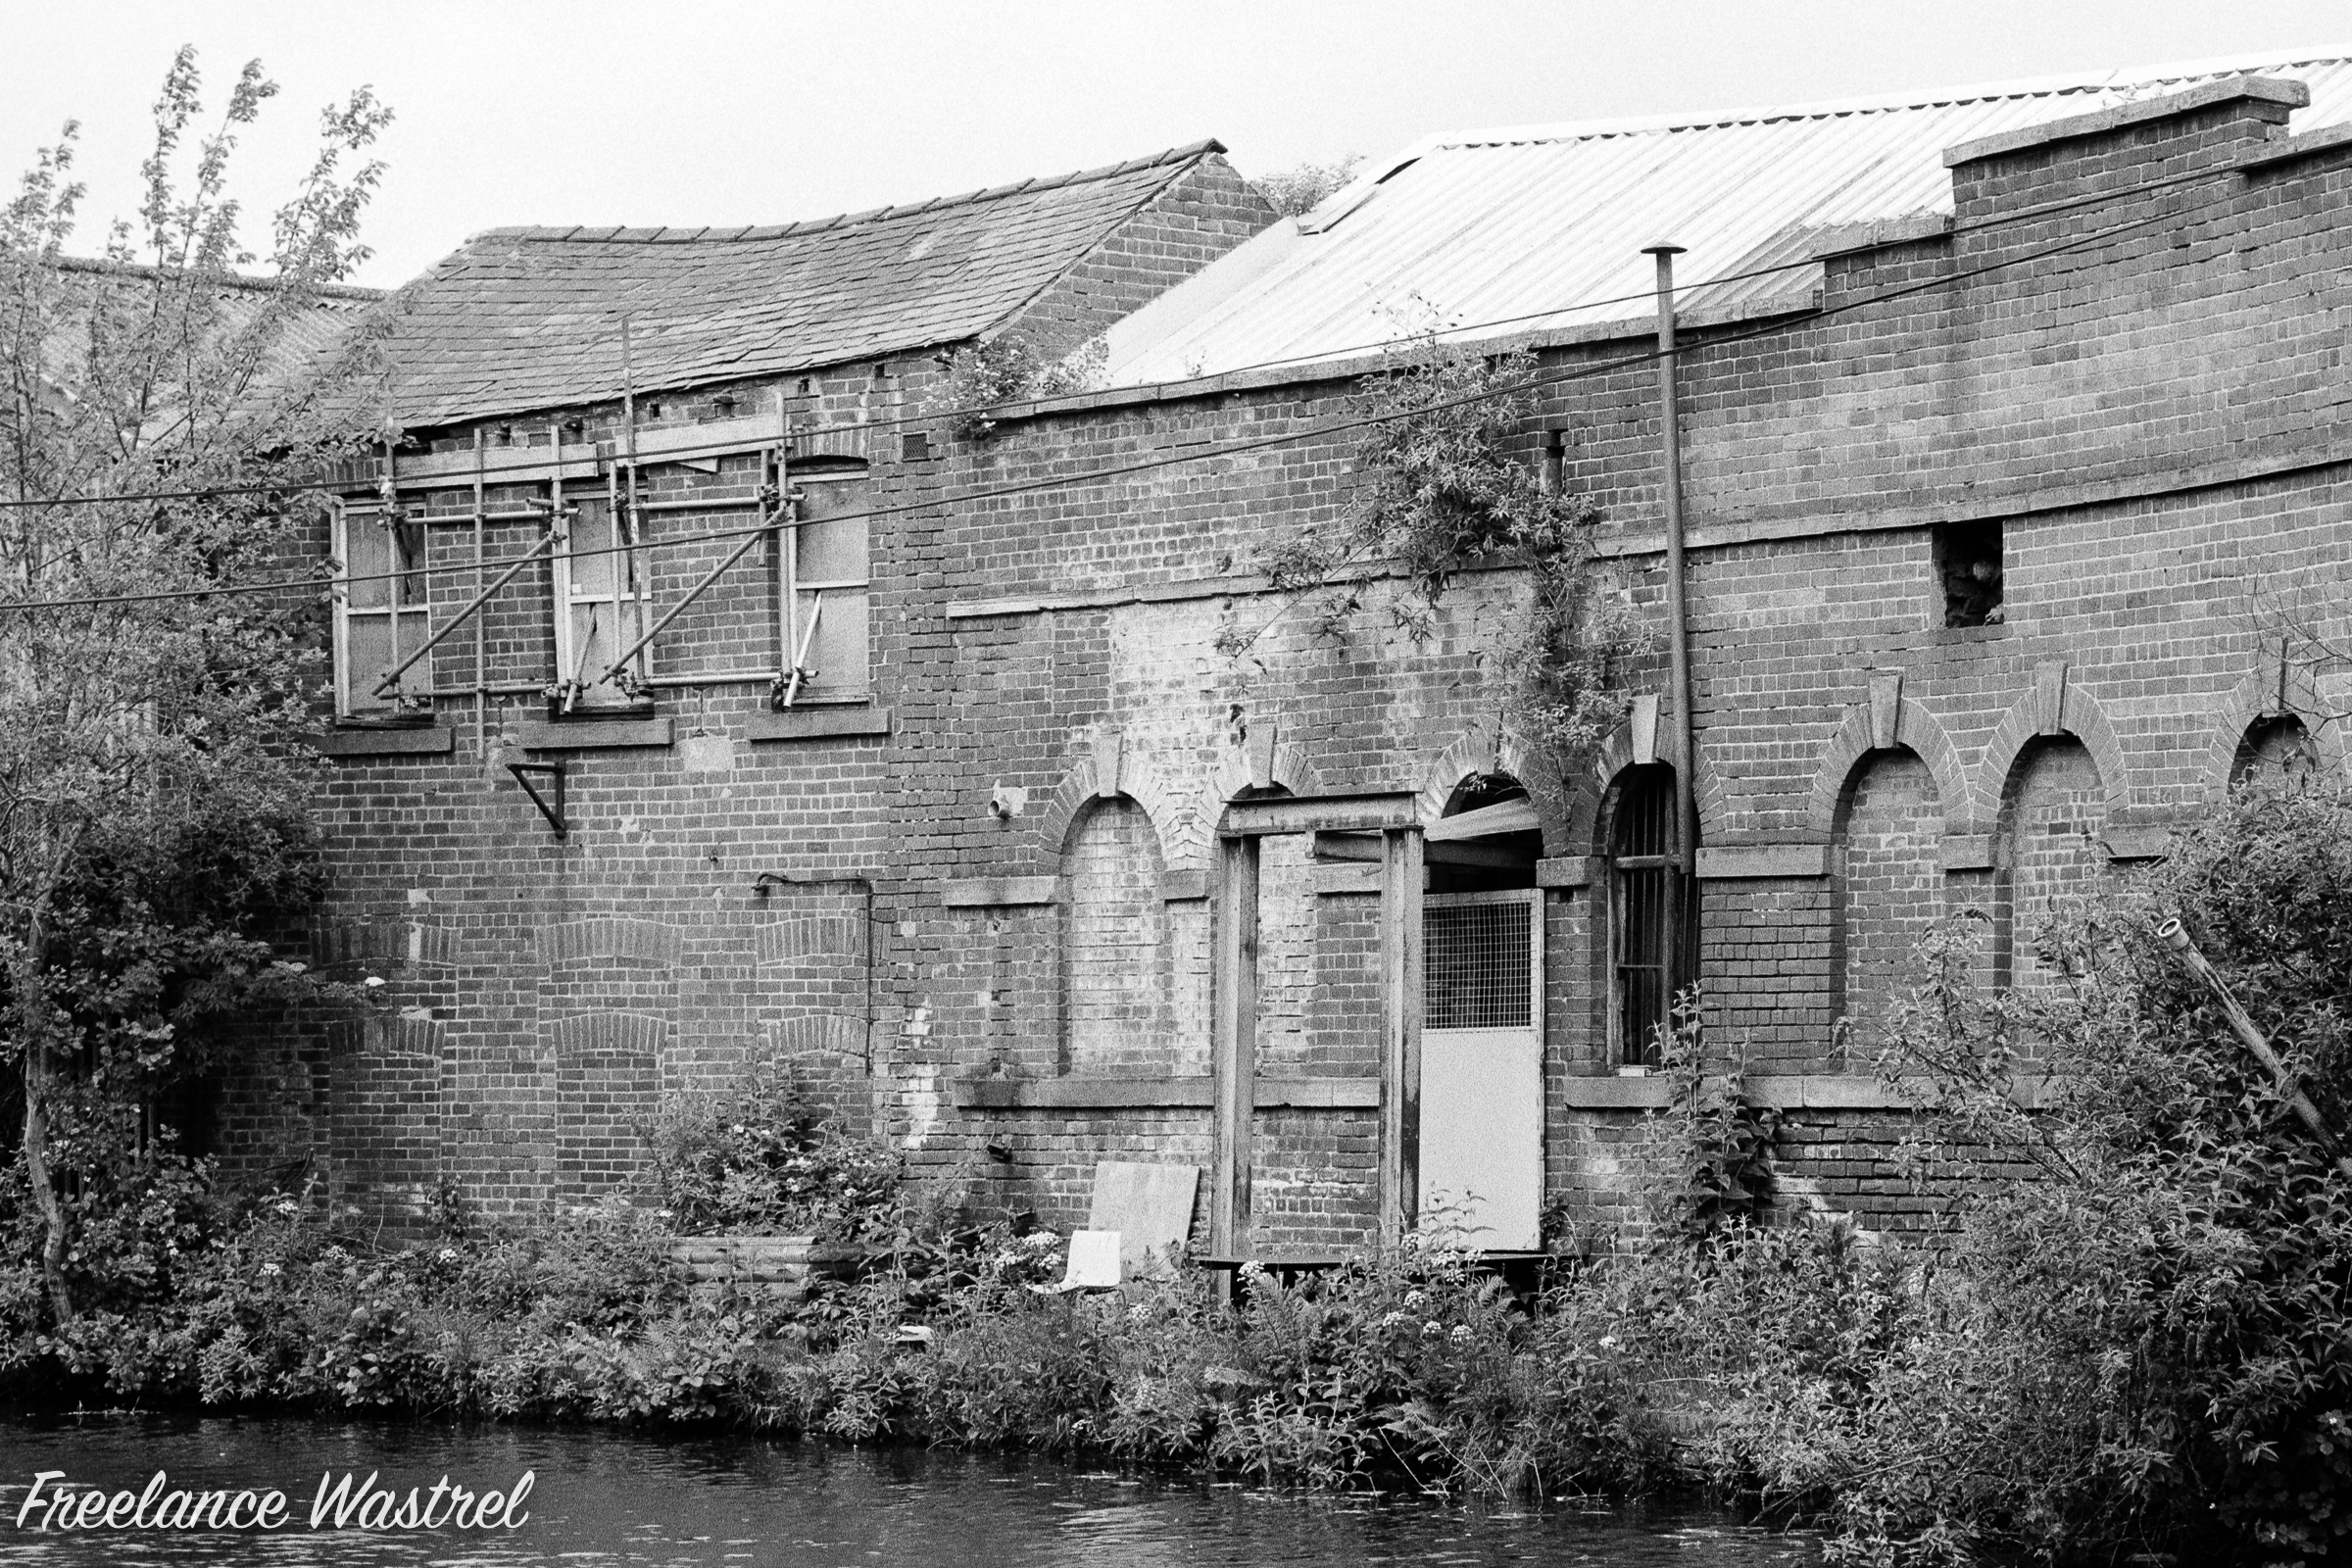 Canal-side decay, Attercliffe